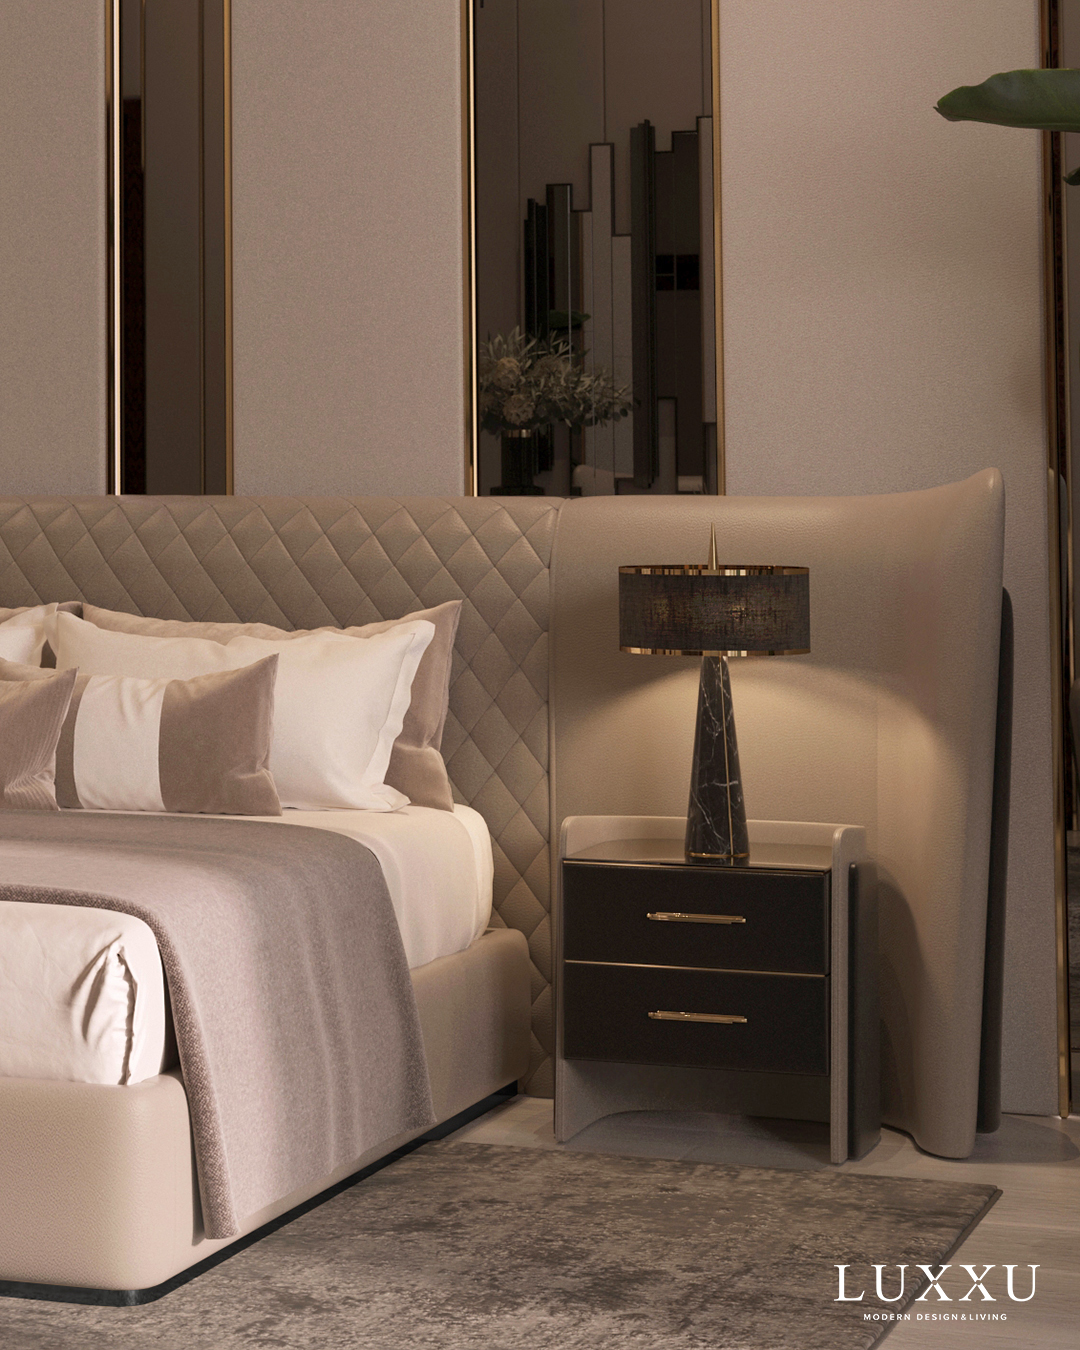 Upgrade Your Bedroom With Luxxu's Newest Collection bedroom Upgrade Your Bedroom With Luxxu's Newest Collection 2 11